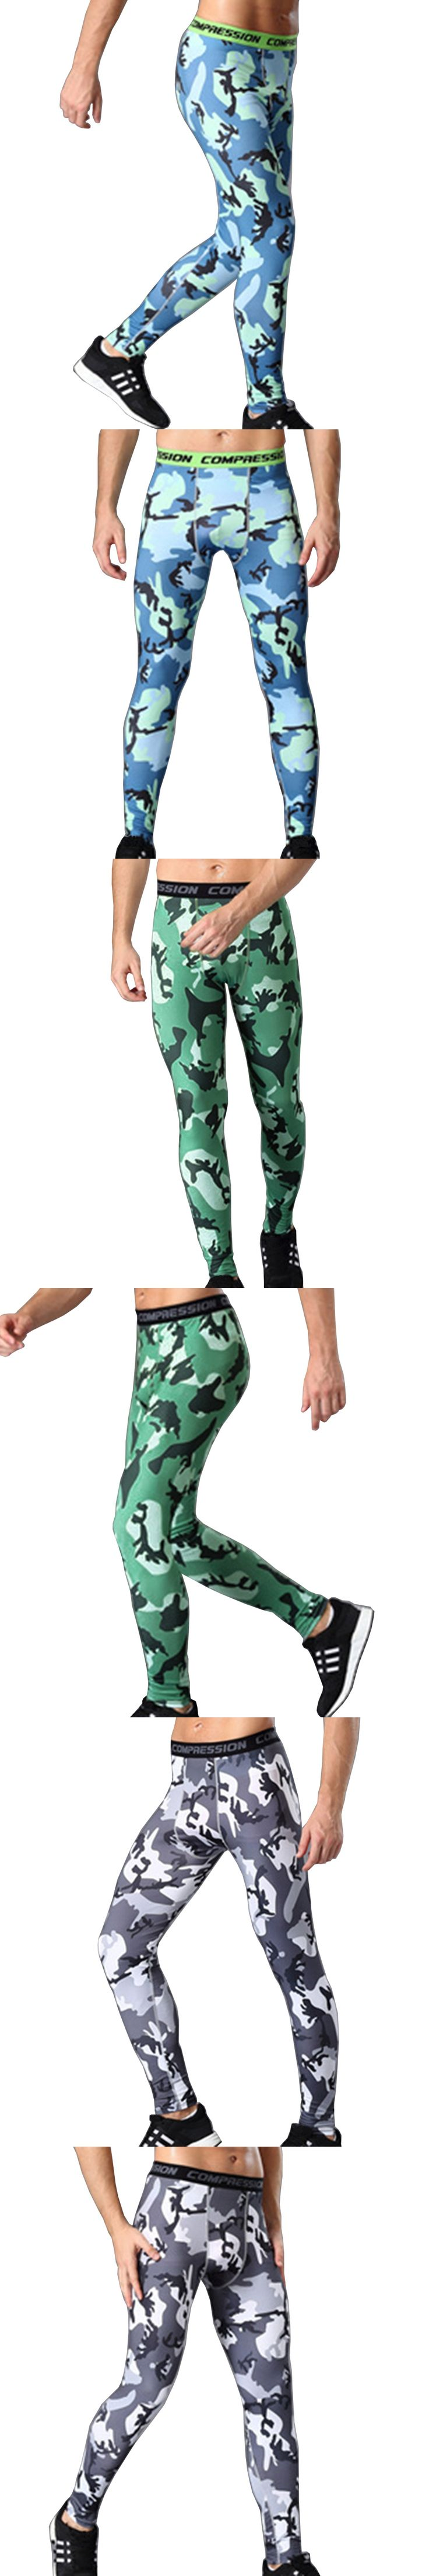 2017 Men Compression Pants Tights Casual  Bodybuilding Mans Trousers Brand Camouflage Army Green Skinny Leggings